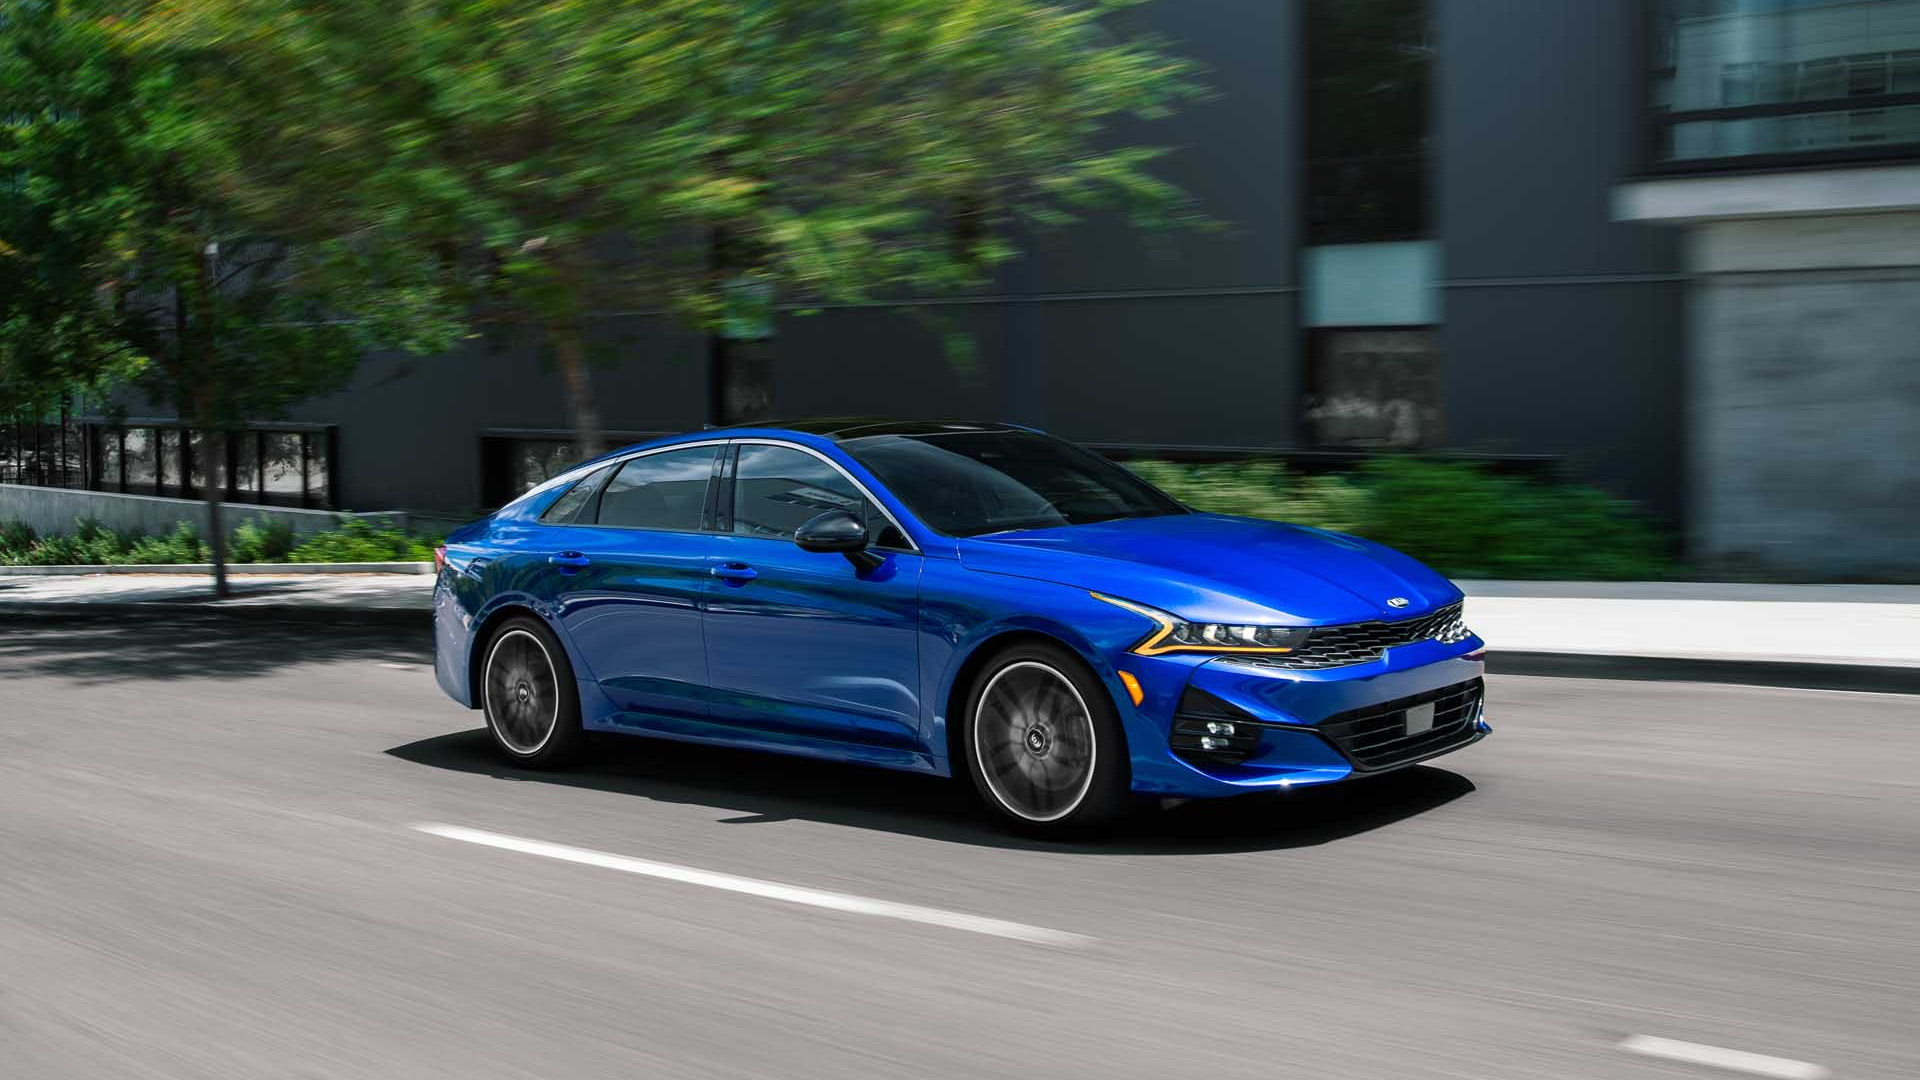 2021 kia k5 preview optima replacement arrives with